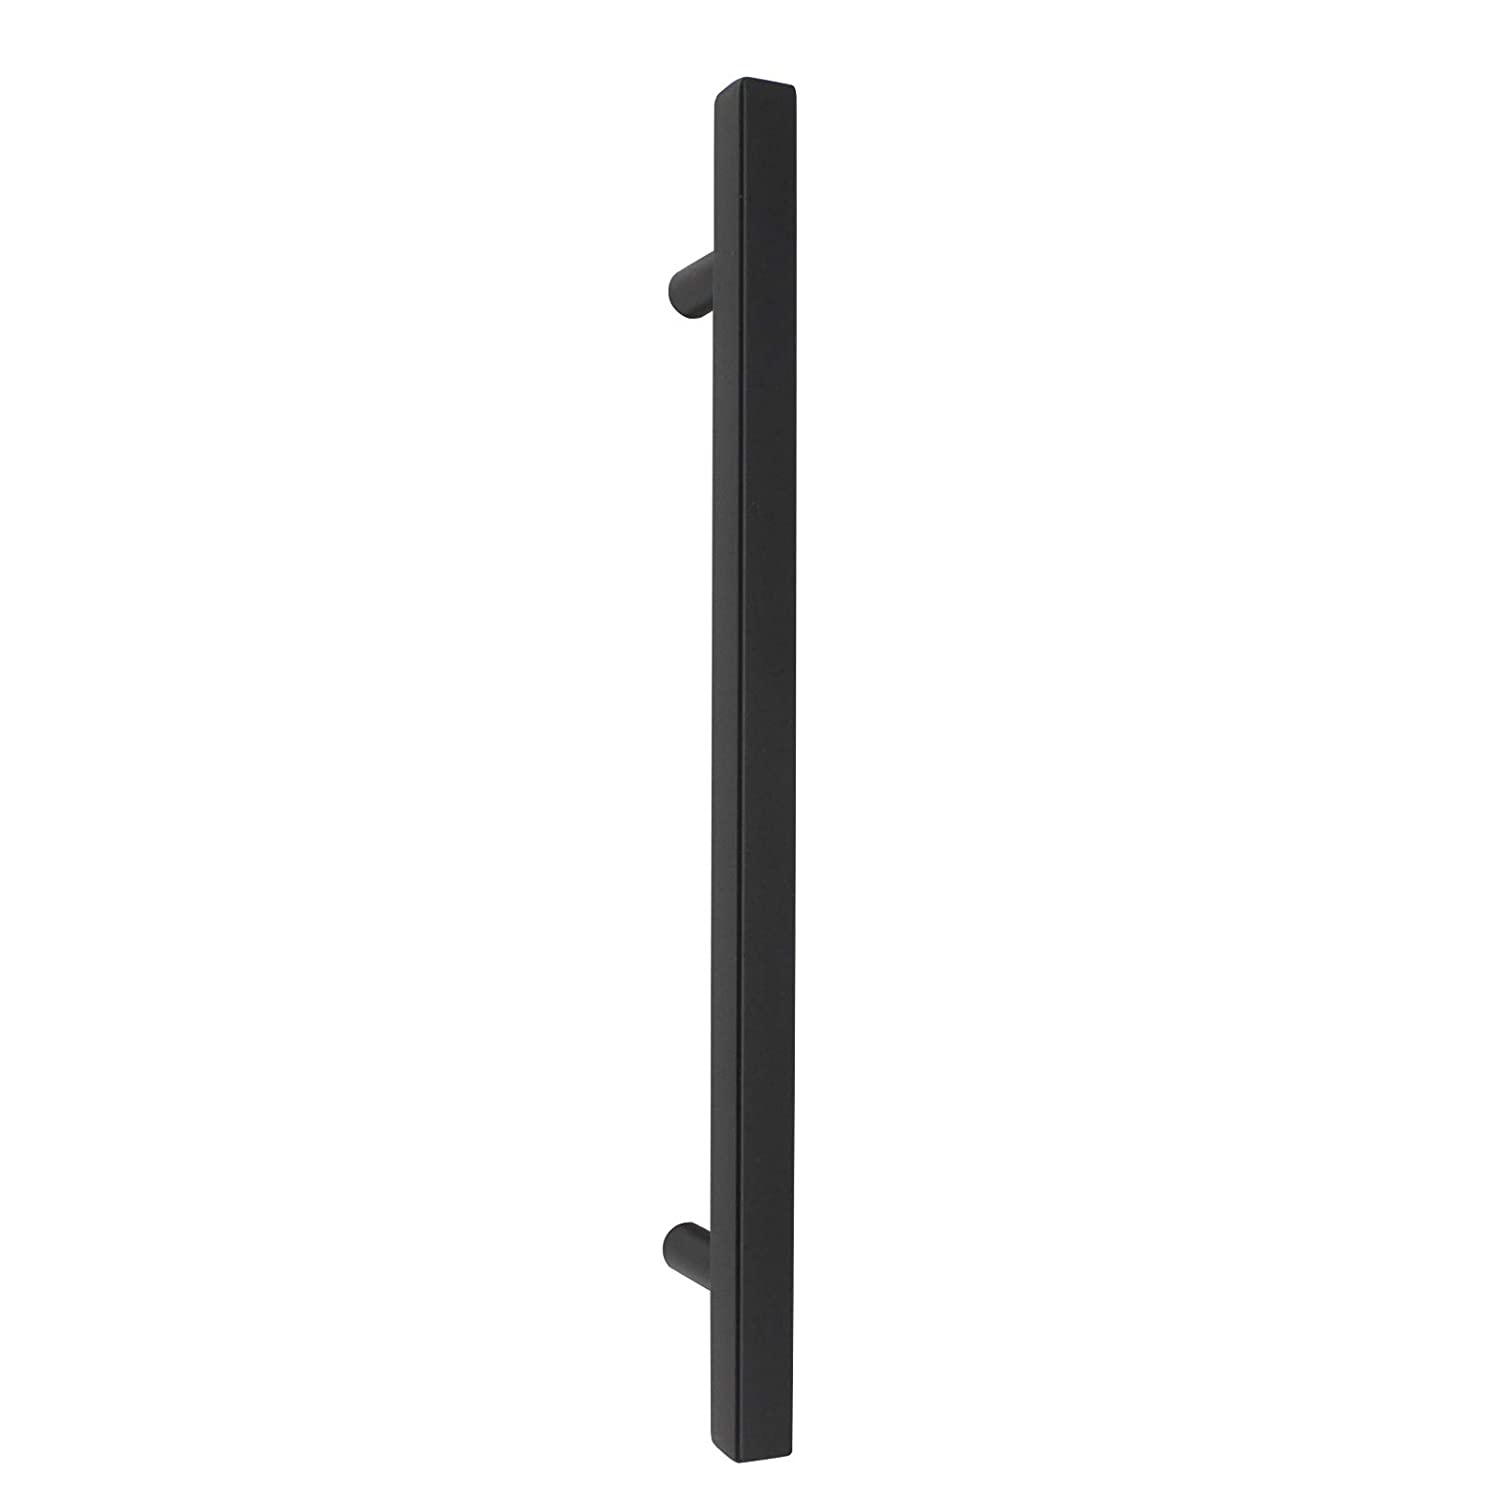 64mm Probrico Cabinet Handles-Pack of 10 Black 2-1//2inch Overall Length:2inch 50mm Hole Centers Square T Bar Kitchen Cabinet Handles Drawer Pulls for Kitchen Furniture Hardware